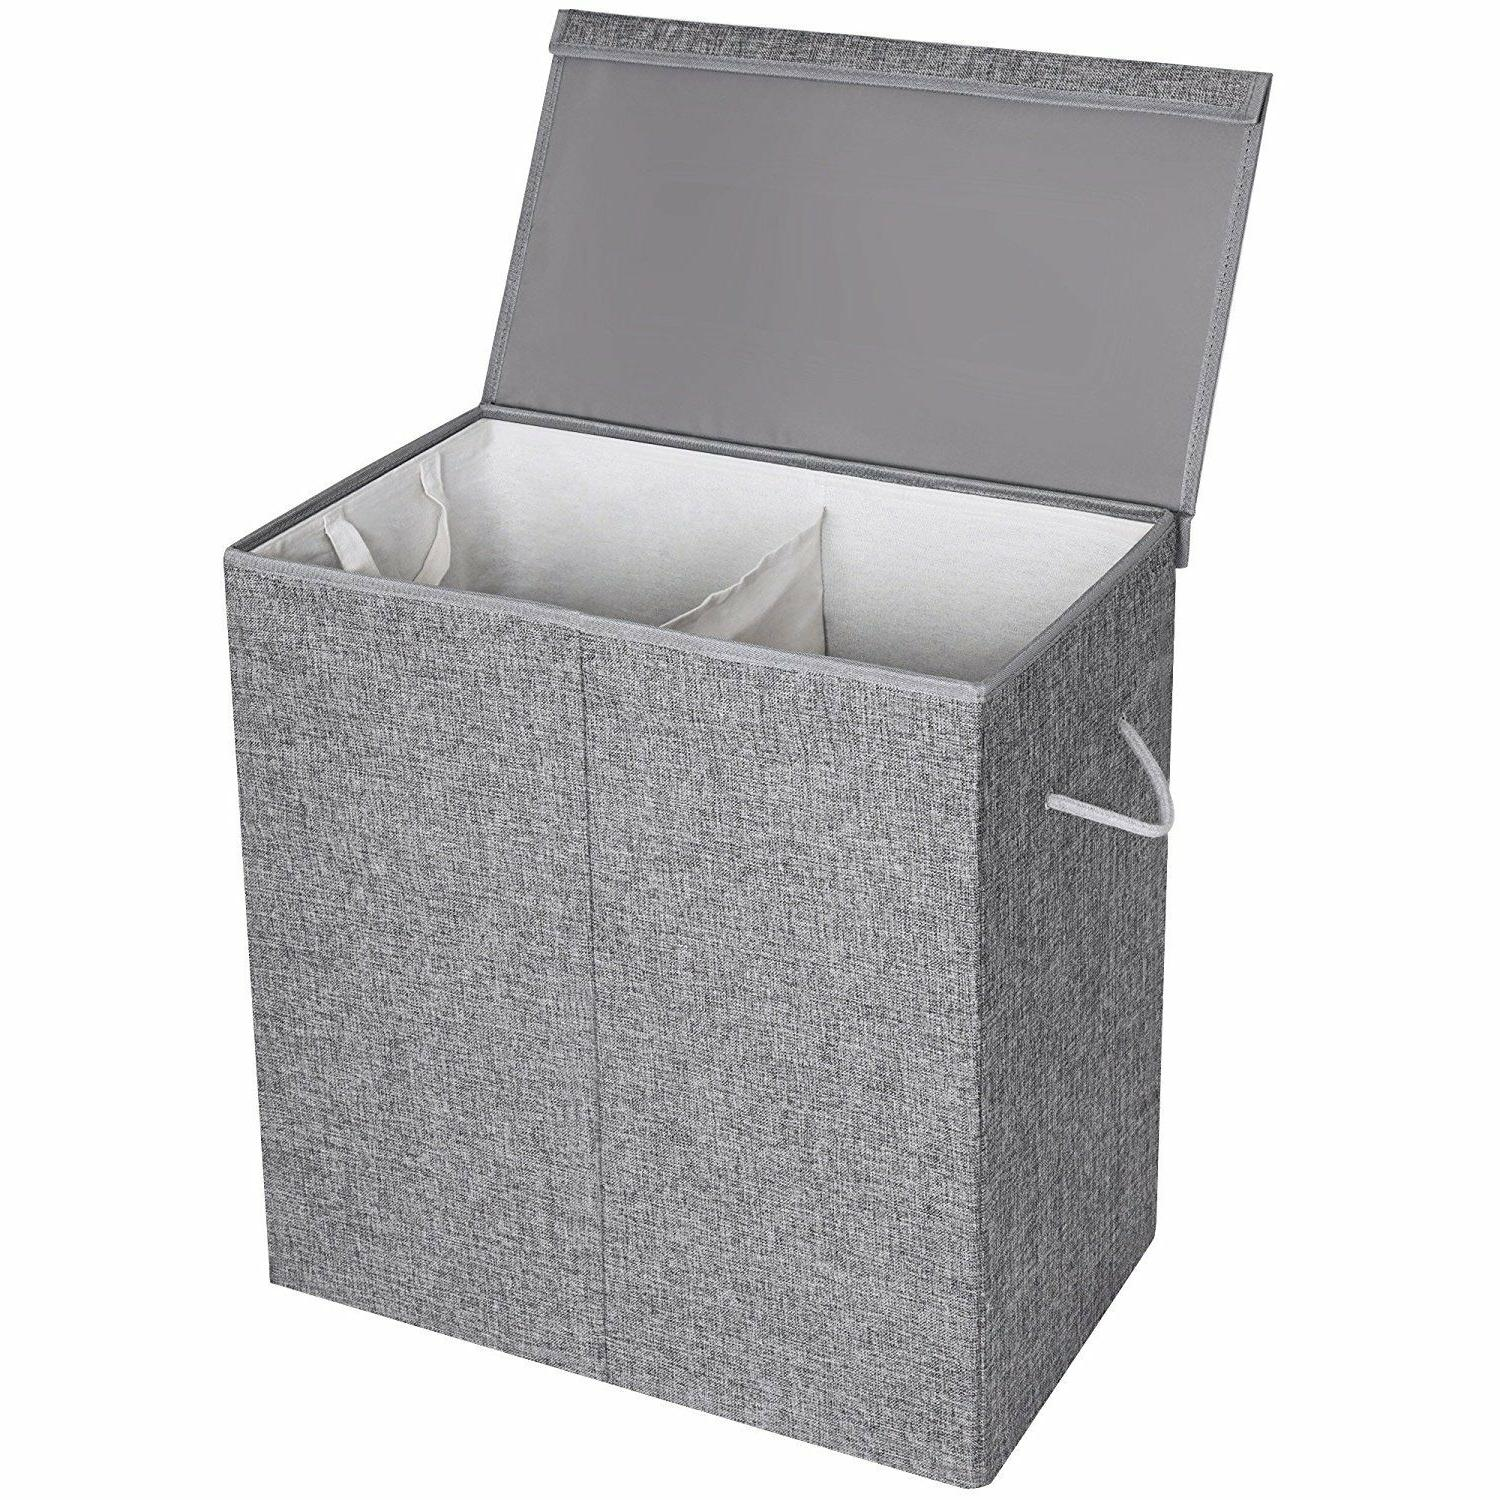 Gray Hamper with Lid 2 Sections Lid Clothes